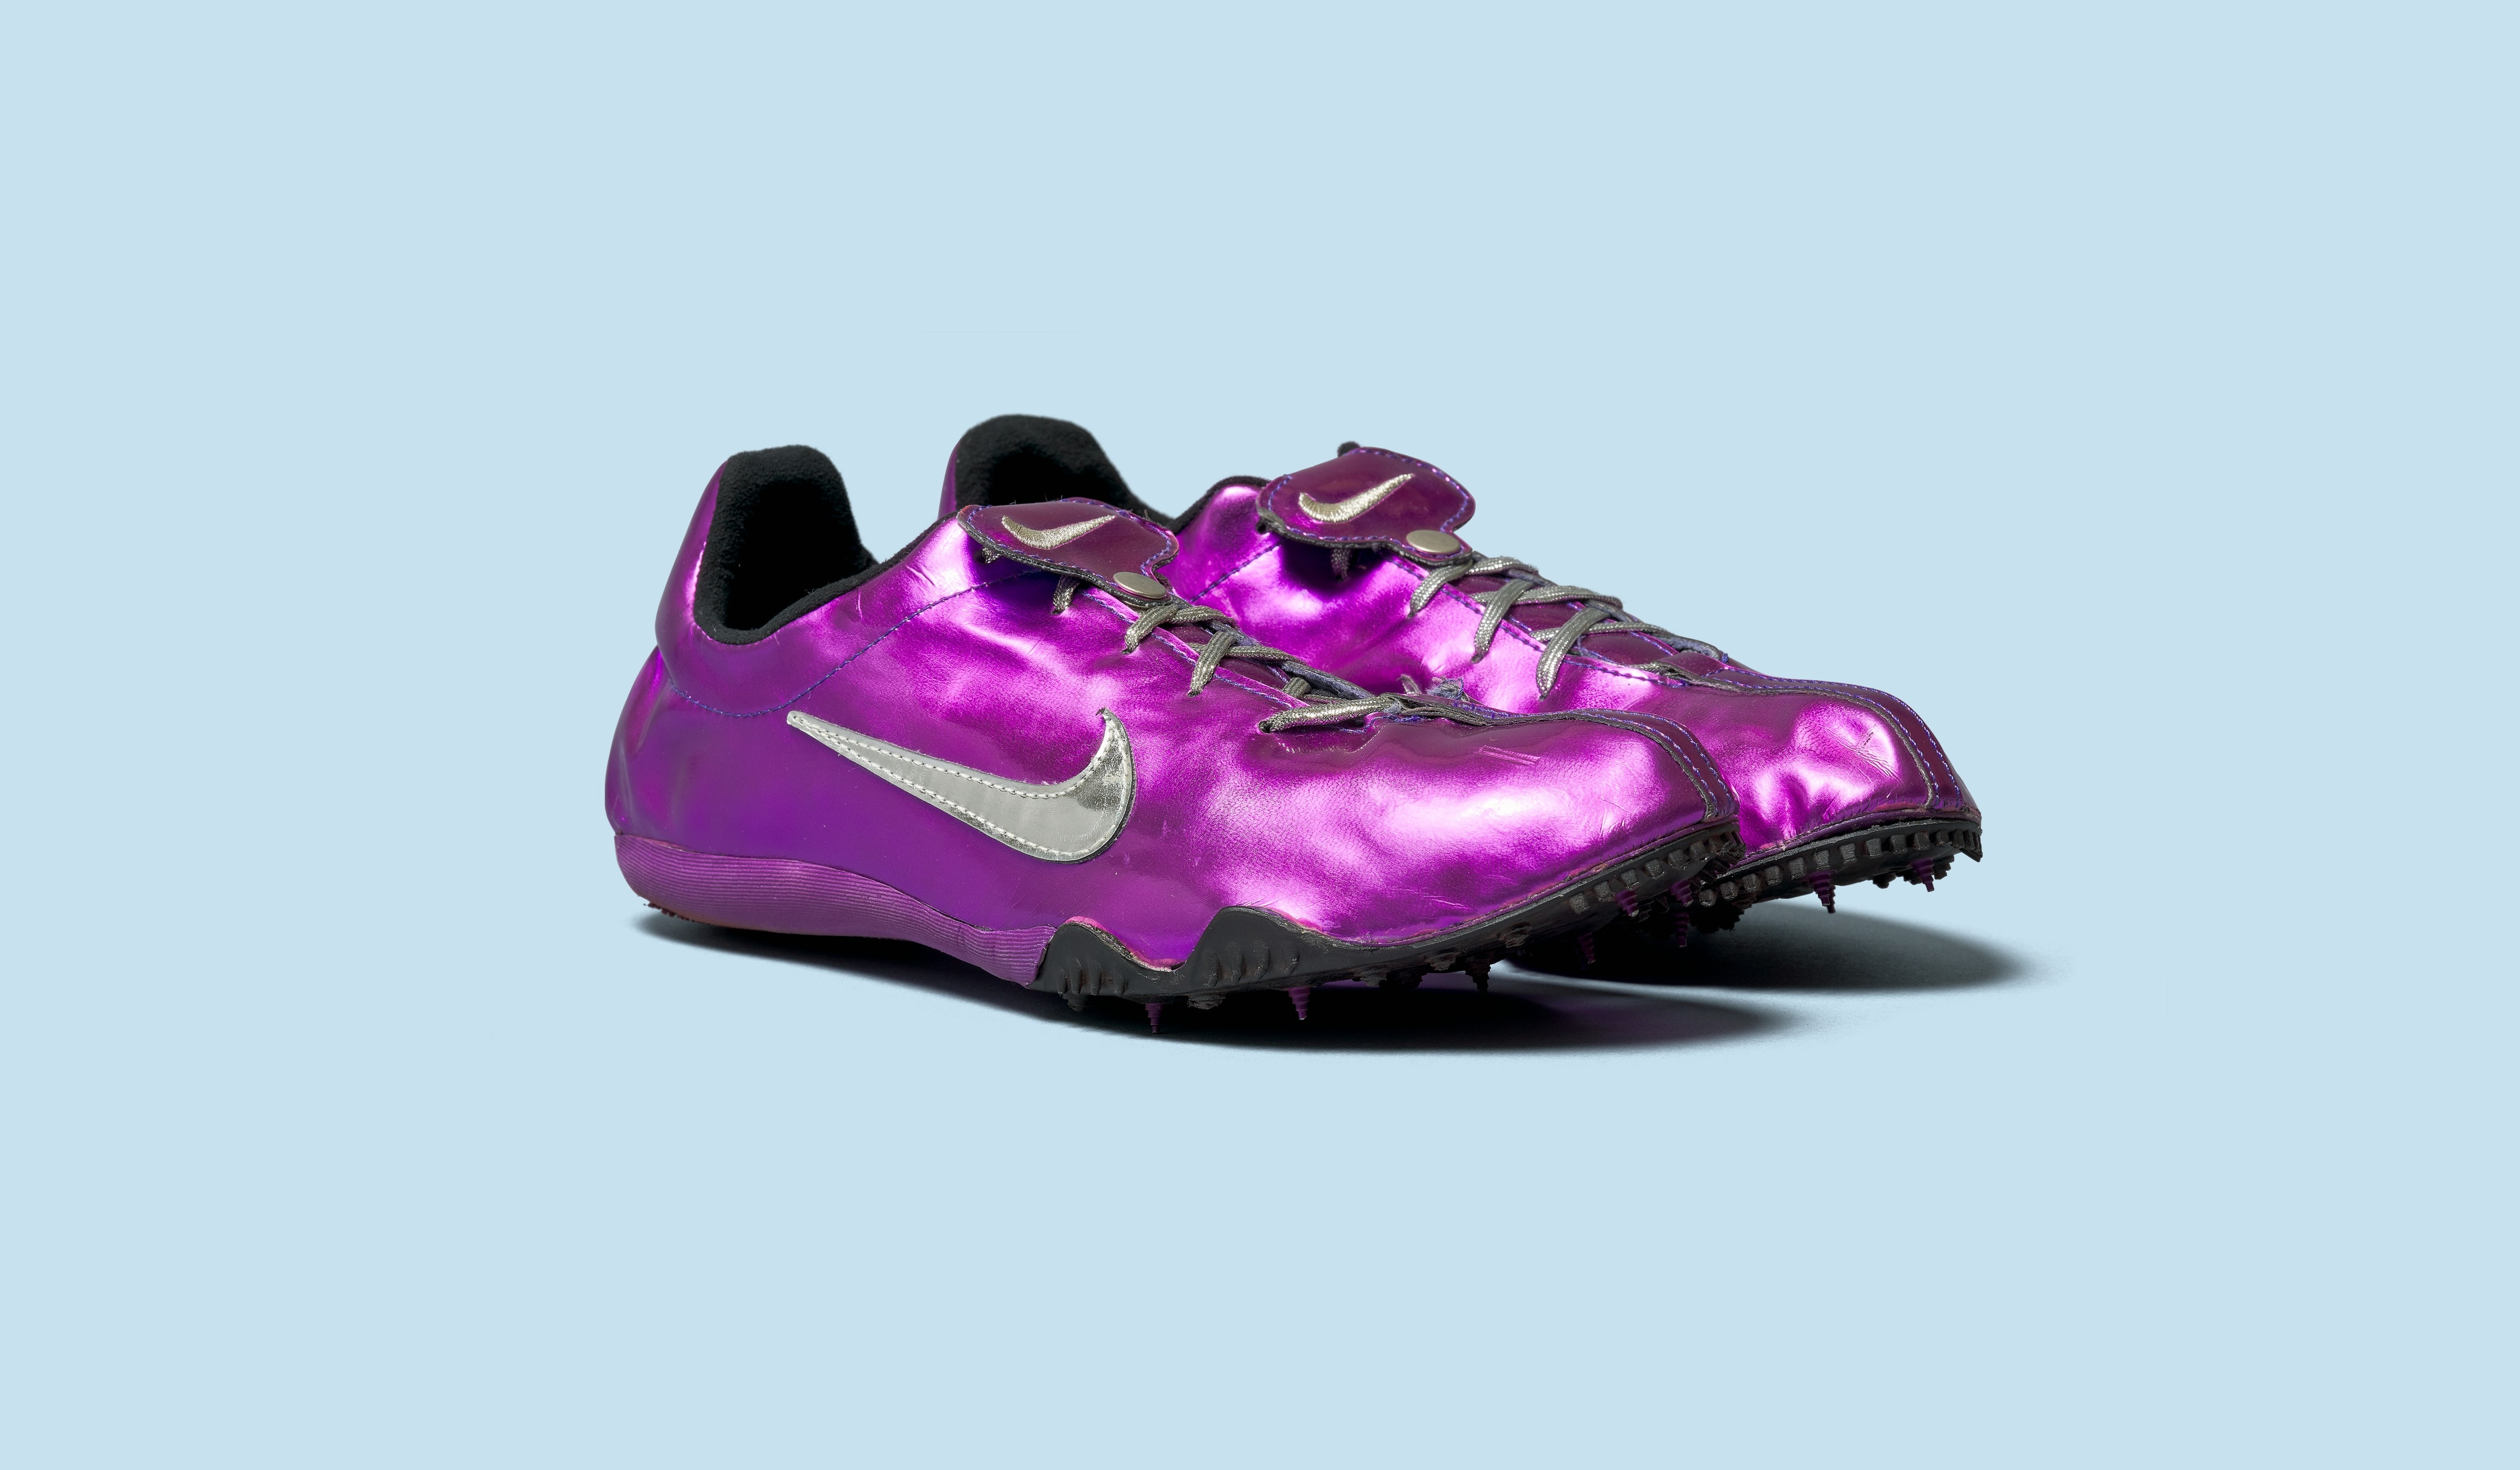 Purple track shoes on blue background